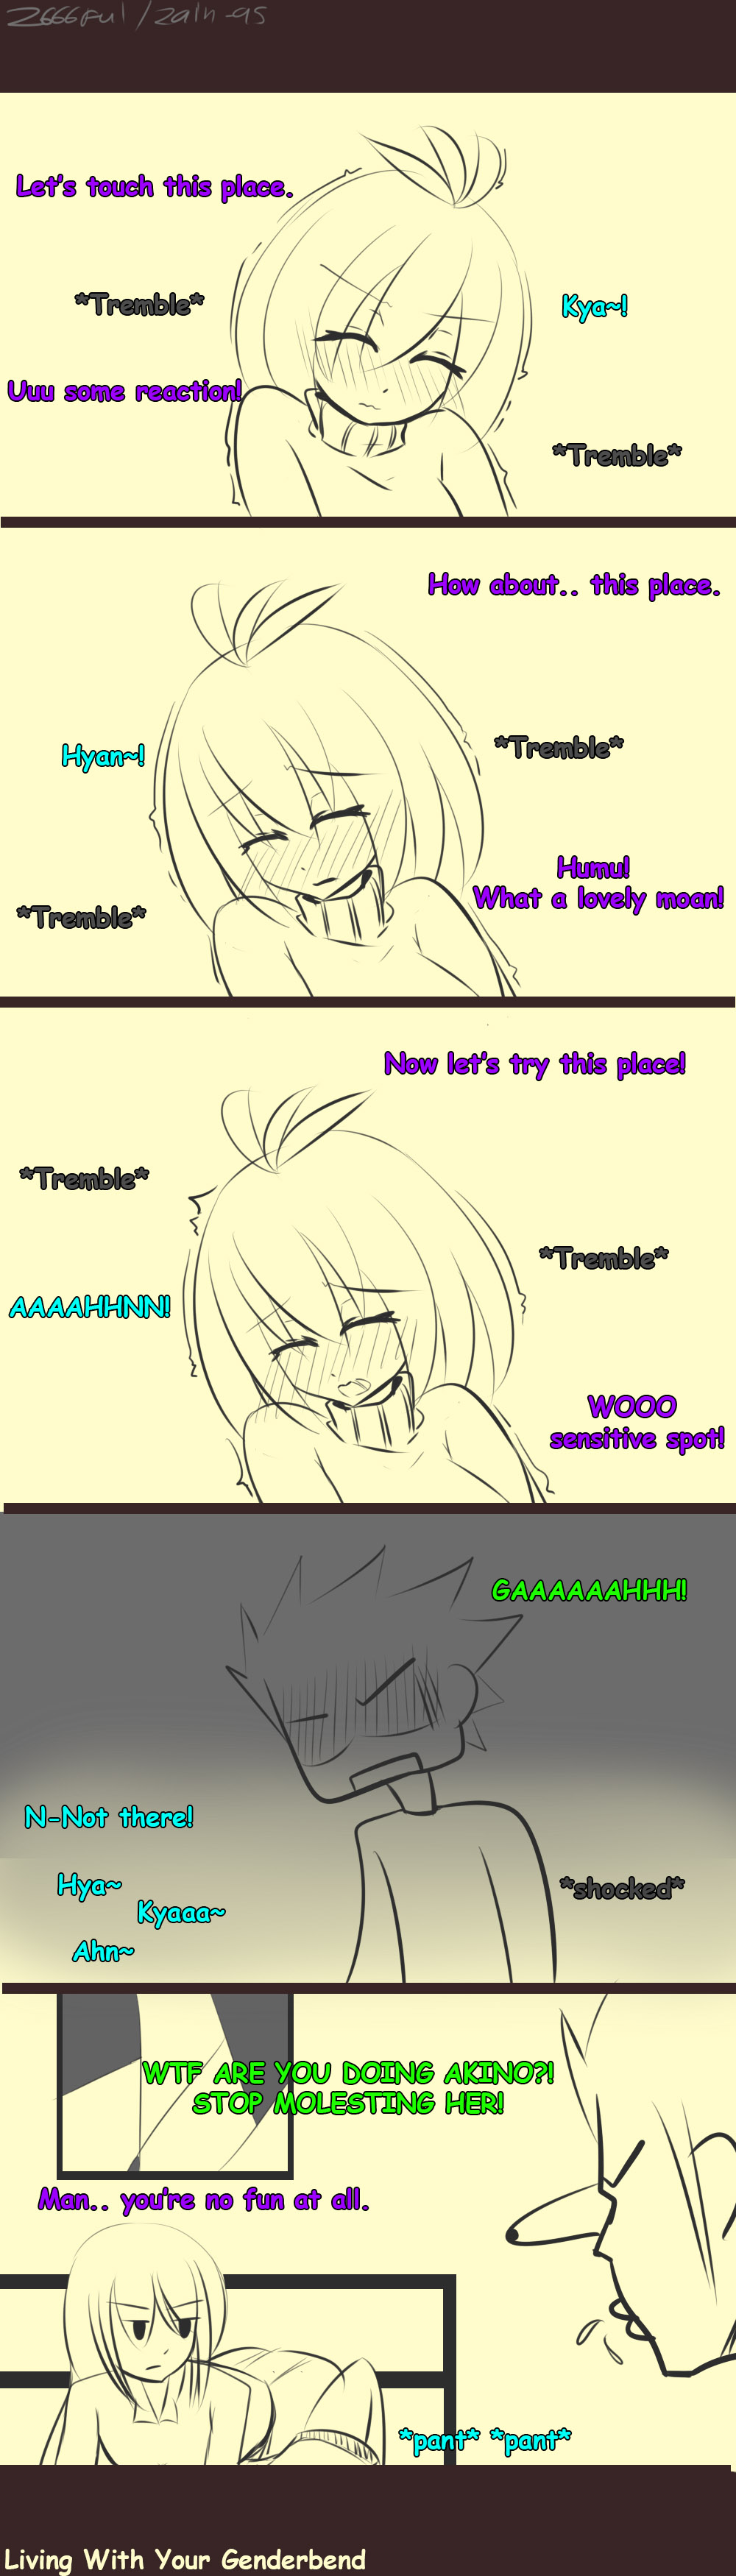 Living With Your Genderbend. - Y U NO JOIN?! - by Zain-95